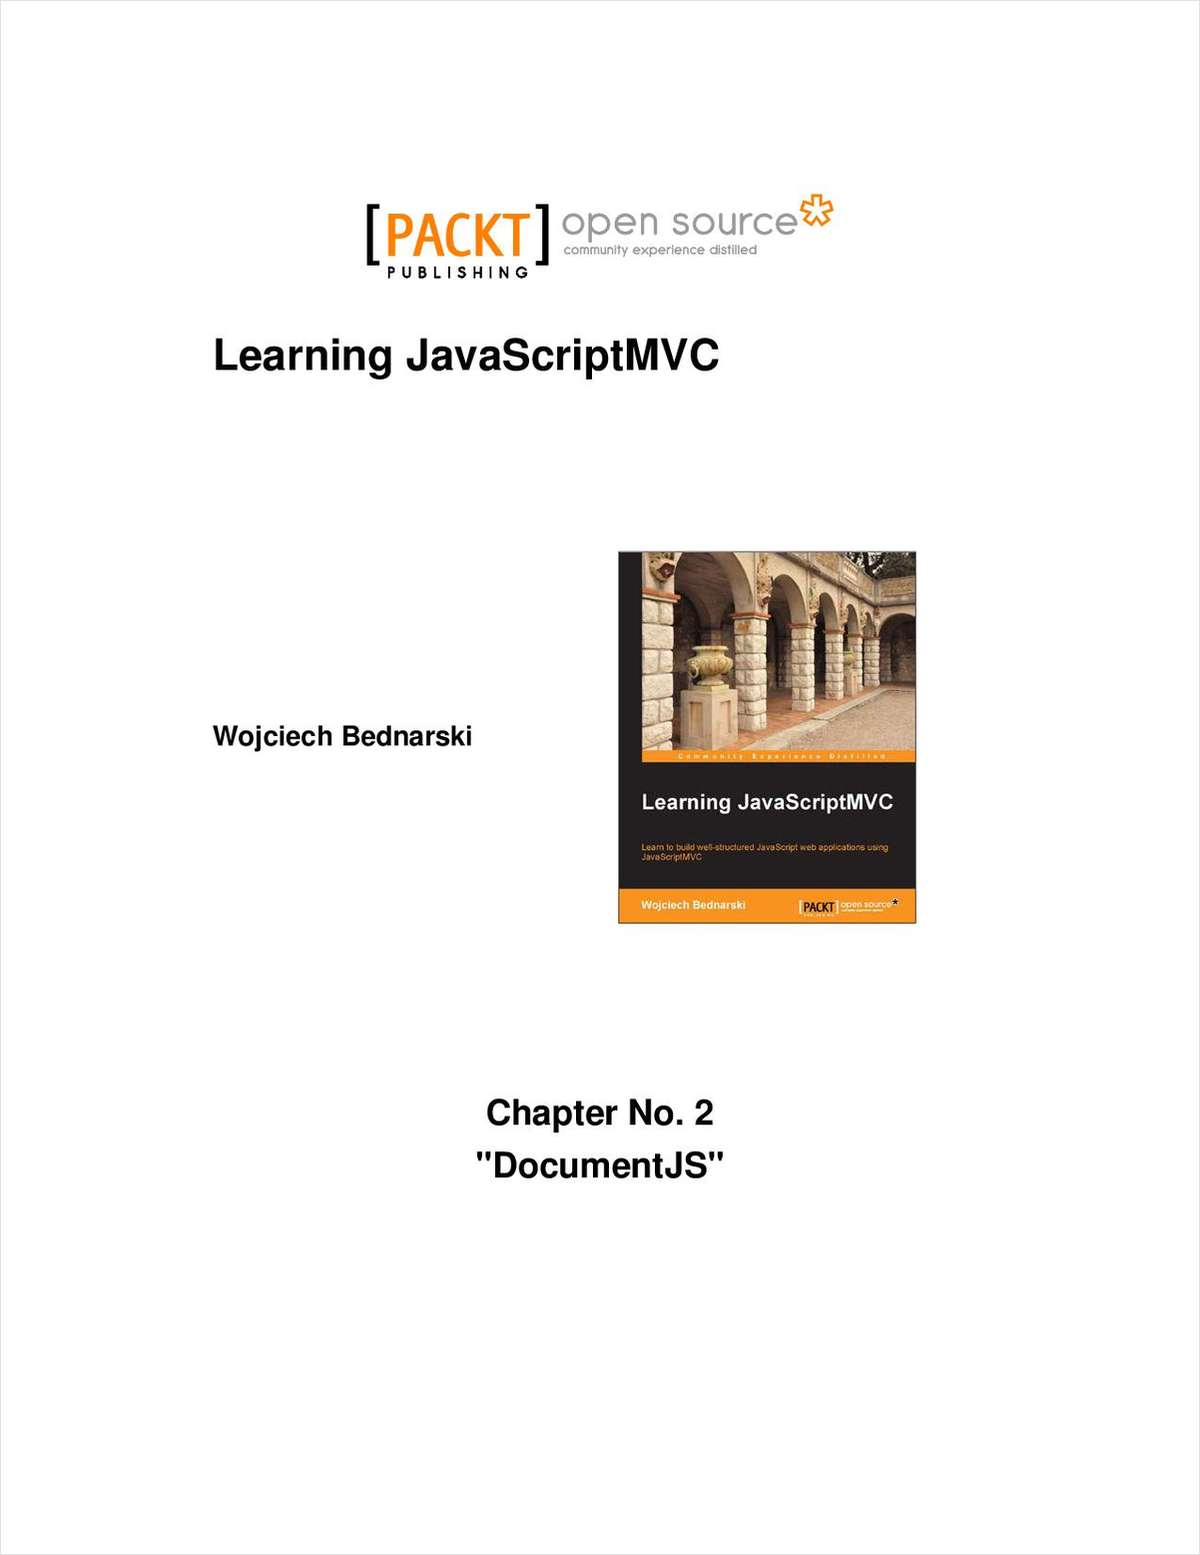 Learning JavaScriptMVC -- Free 14 Page Excerpt